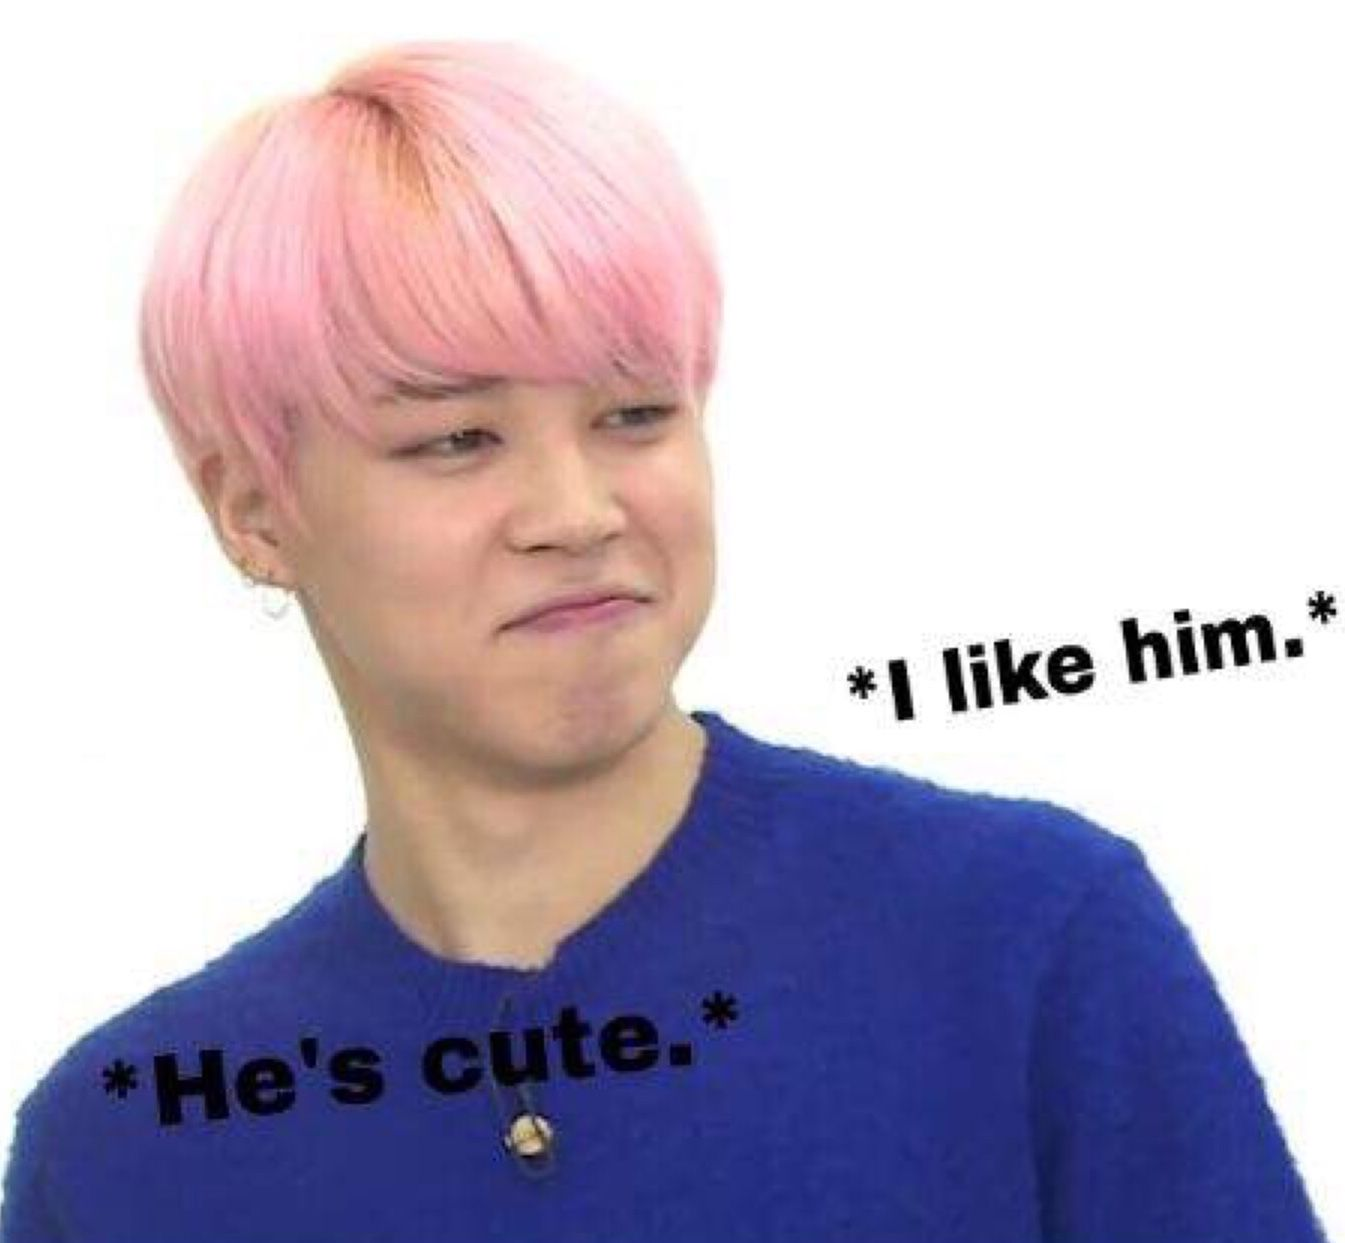 Me when I see a member of a kpop group | Bts meme faces ...